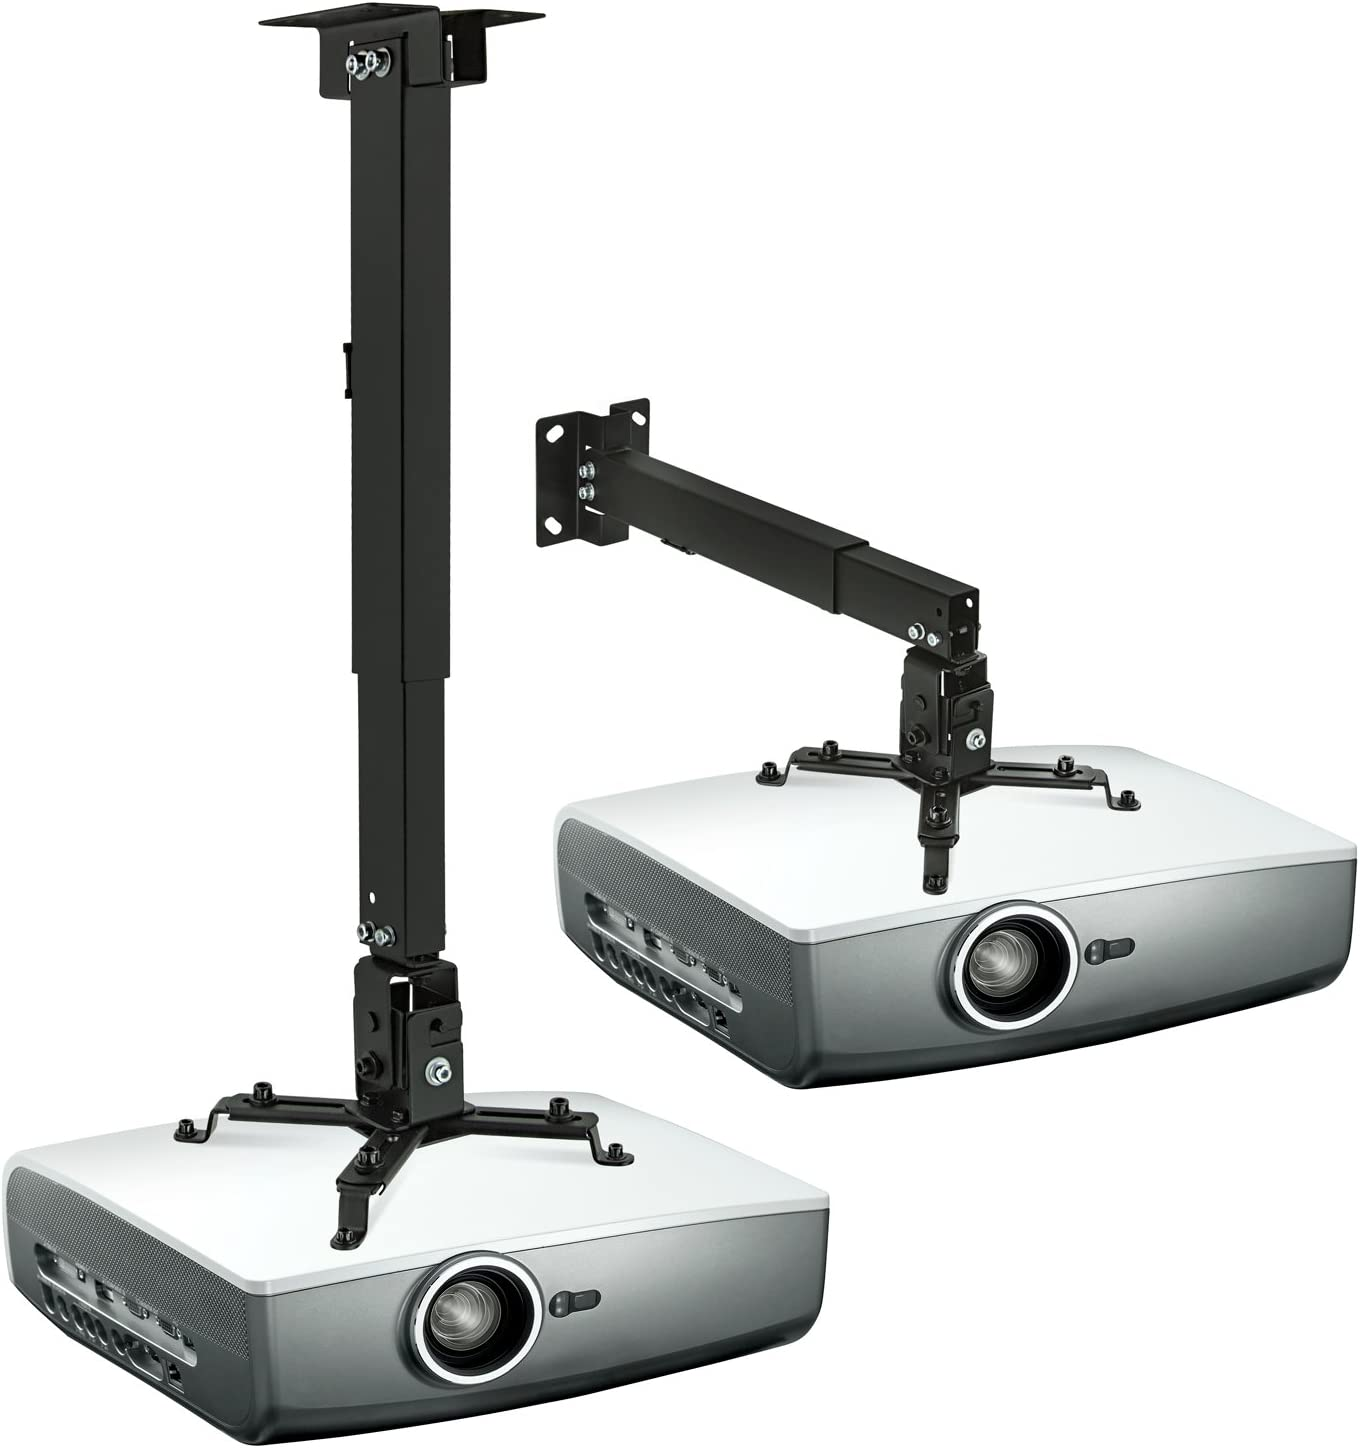 Mount-It! Wall or Ceiling Projector Mount with Universal LCD/DLP Mounting for Epson, Optoma, Benq, ViewSonic Projectors, 44lb Load Capacity, Black: Electronics